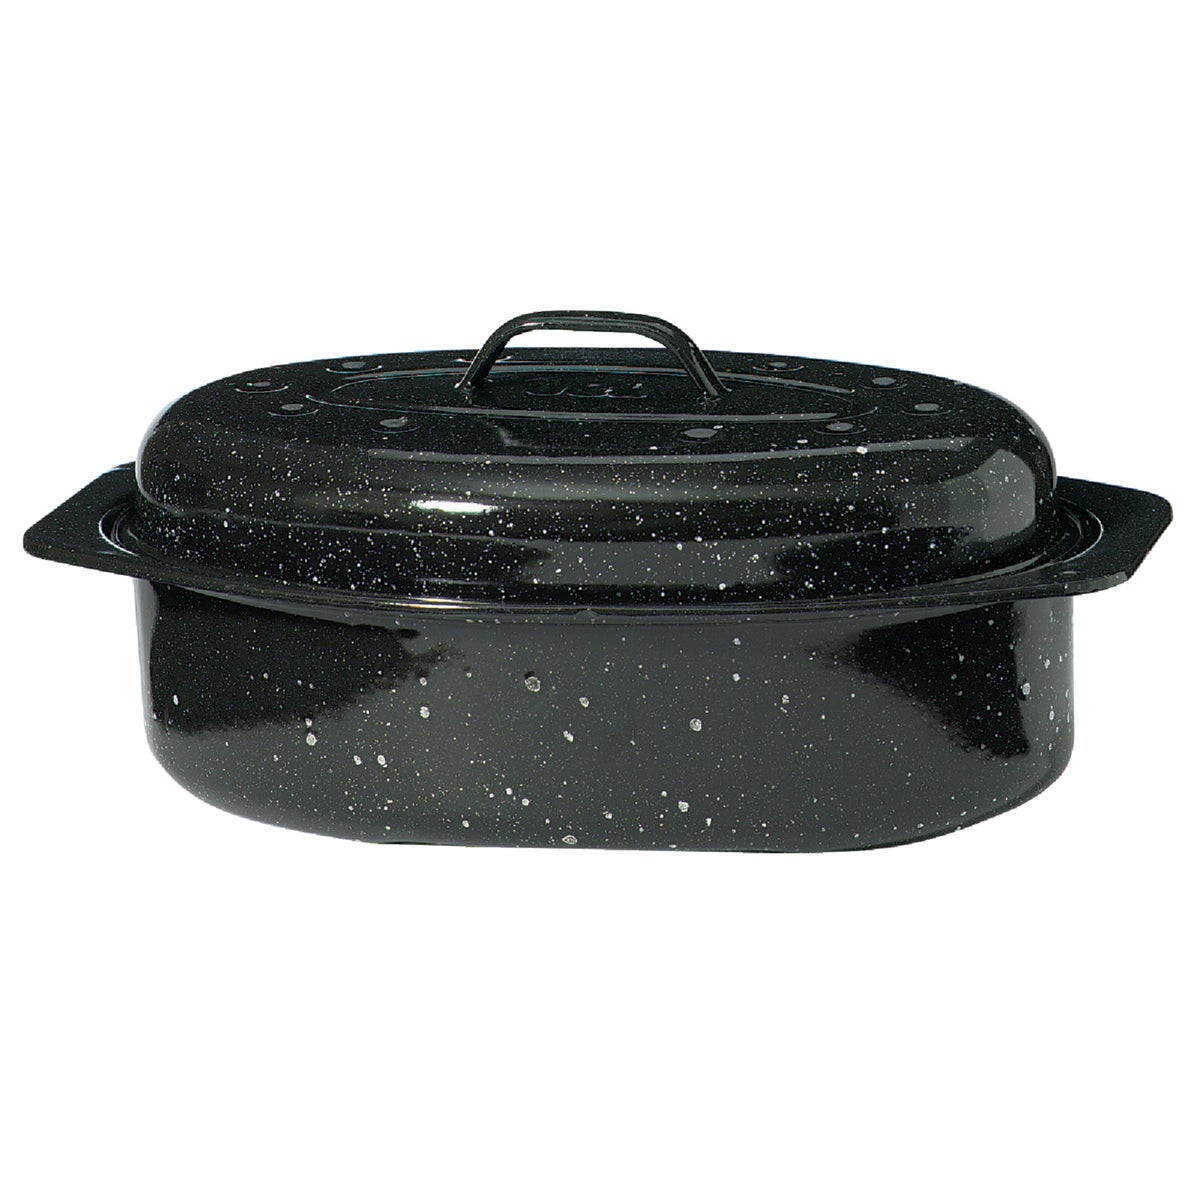 13X8X5 OVAL ROASTER - 6106-6 by Columbian Home Prod